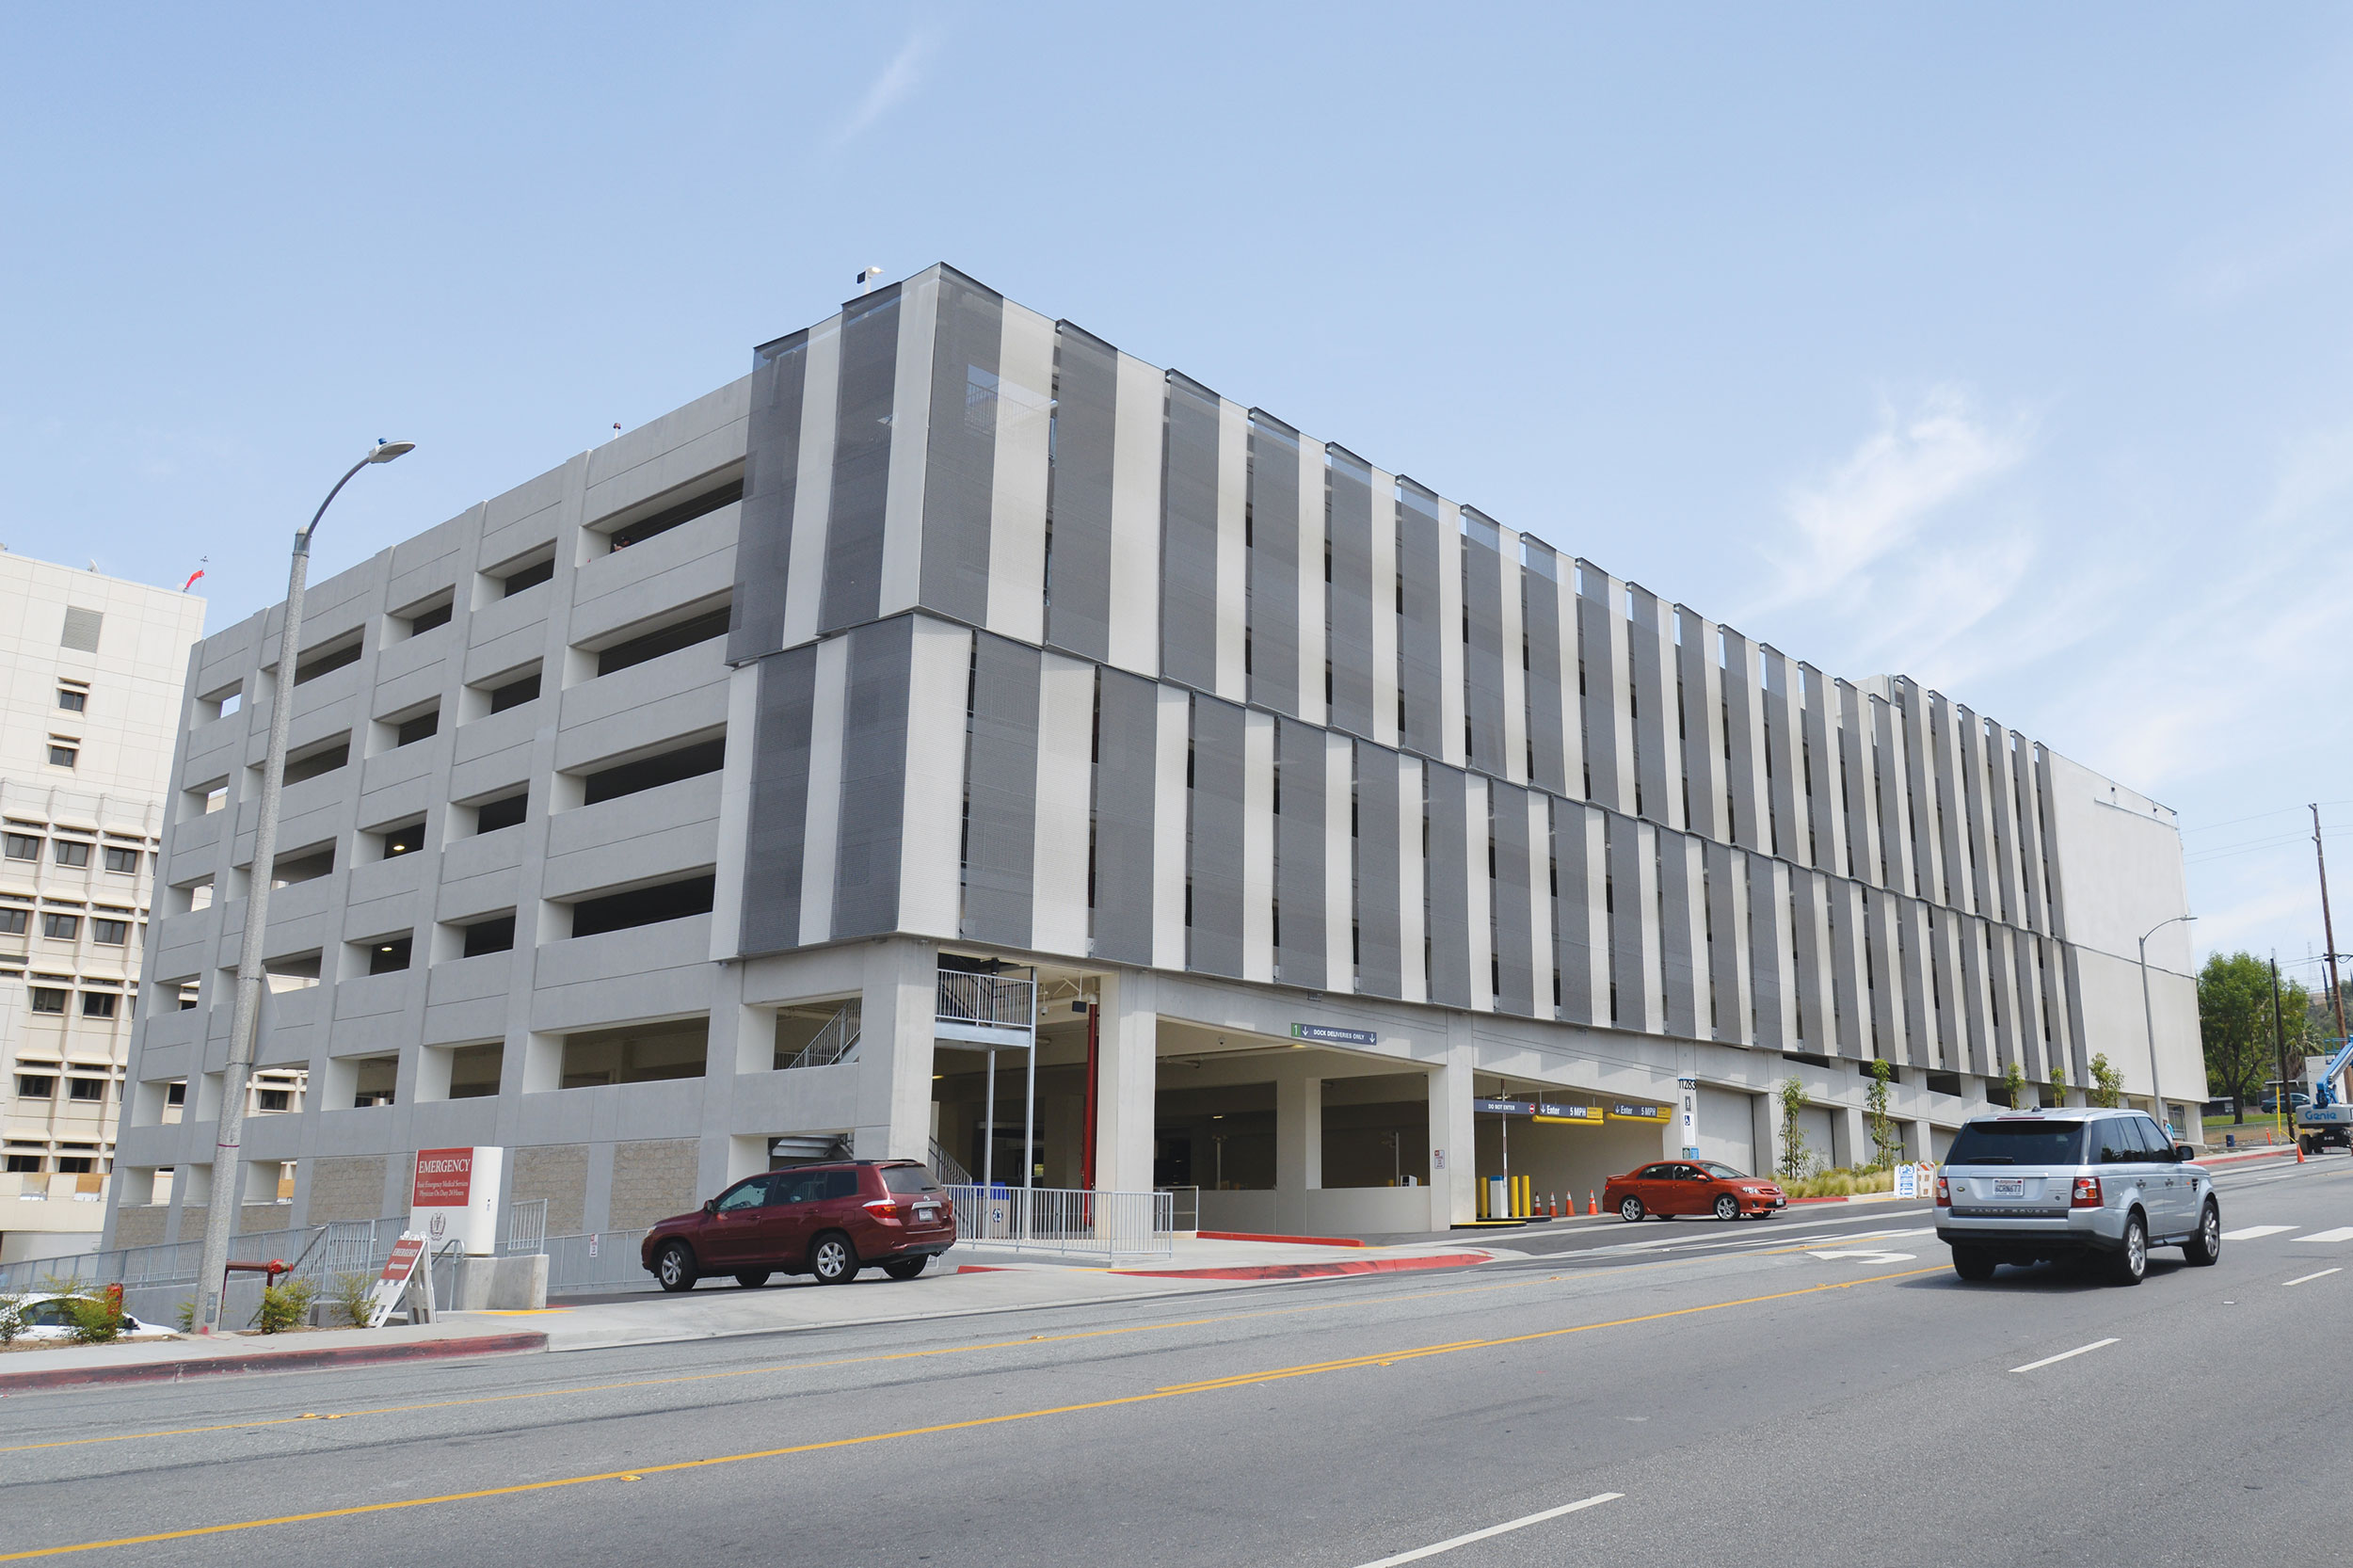 The hot, dry climate of San Bernardino meant sun protection and airflow were critical requirements for the façade. With a fast install time and simple fixing details Kaynemaile Armour exceeded the project requirements – providing enhanced air flow through beautiful louver-like strips.